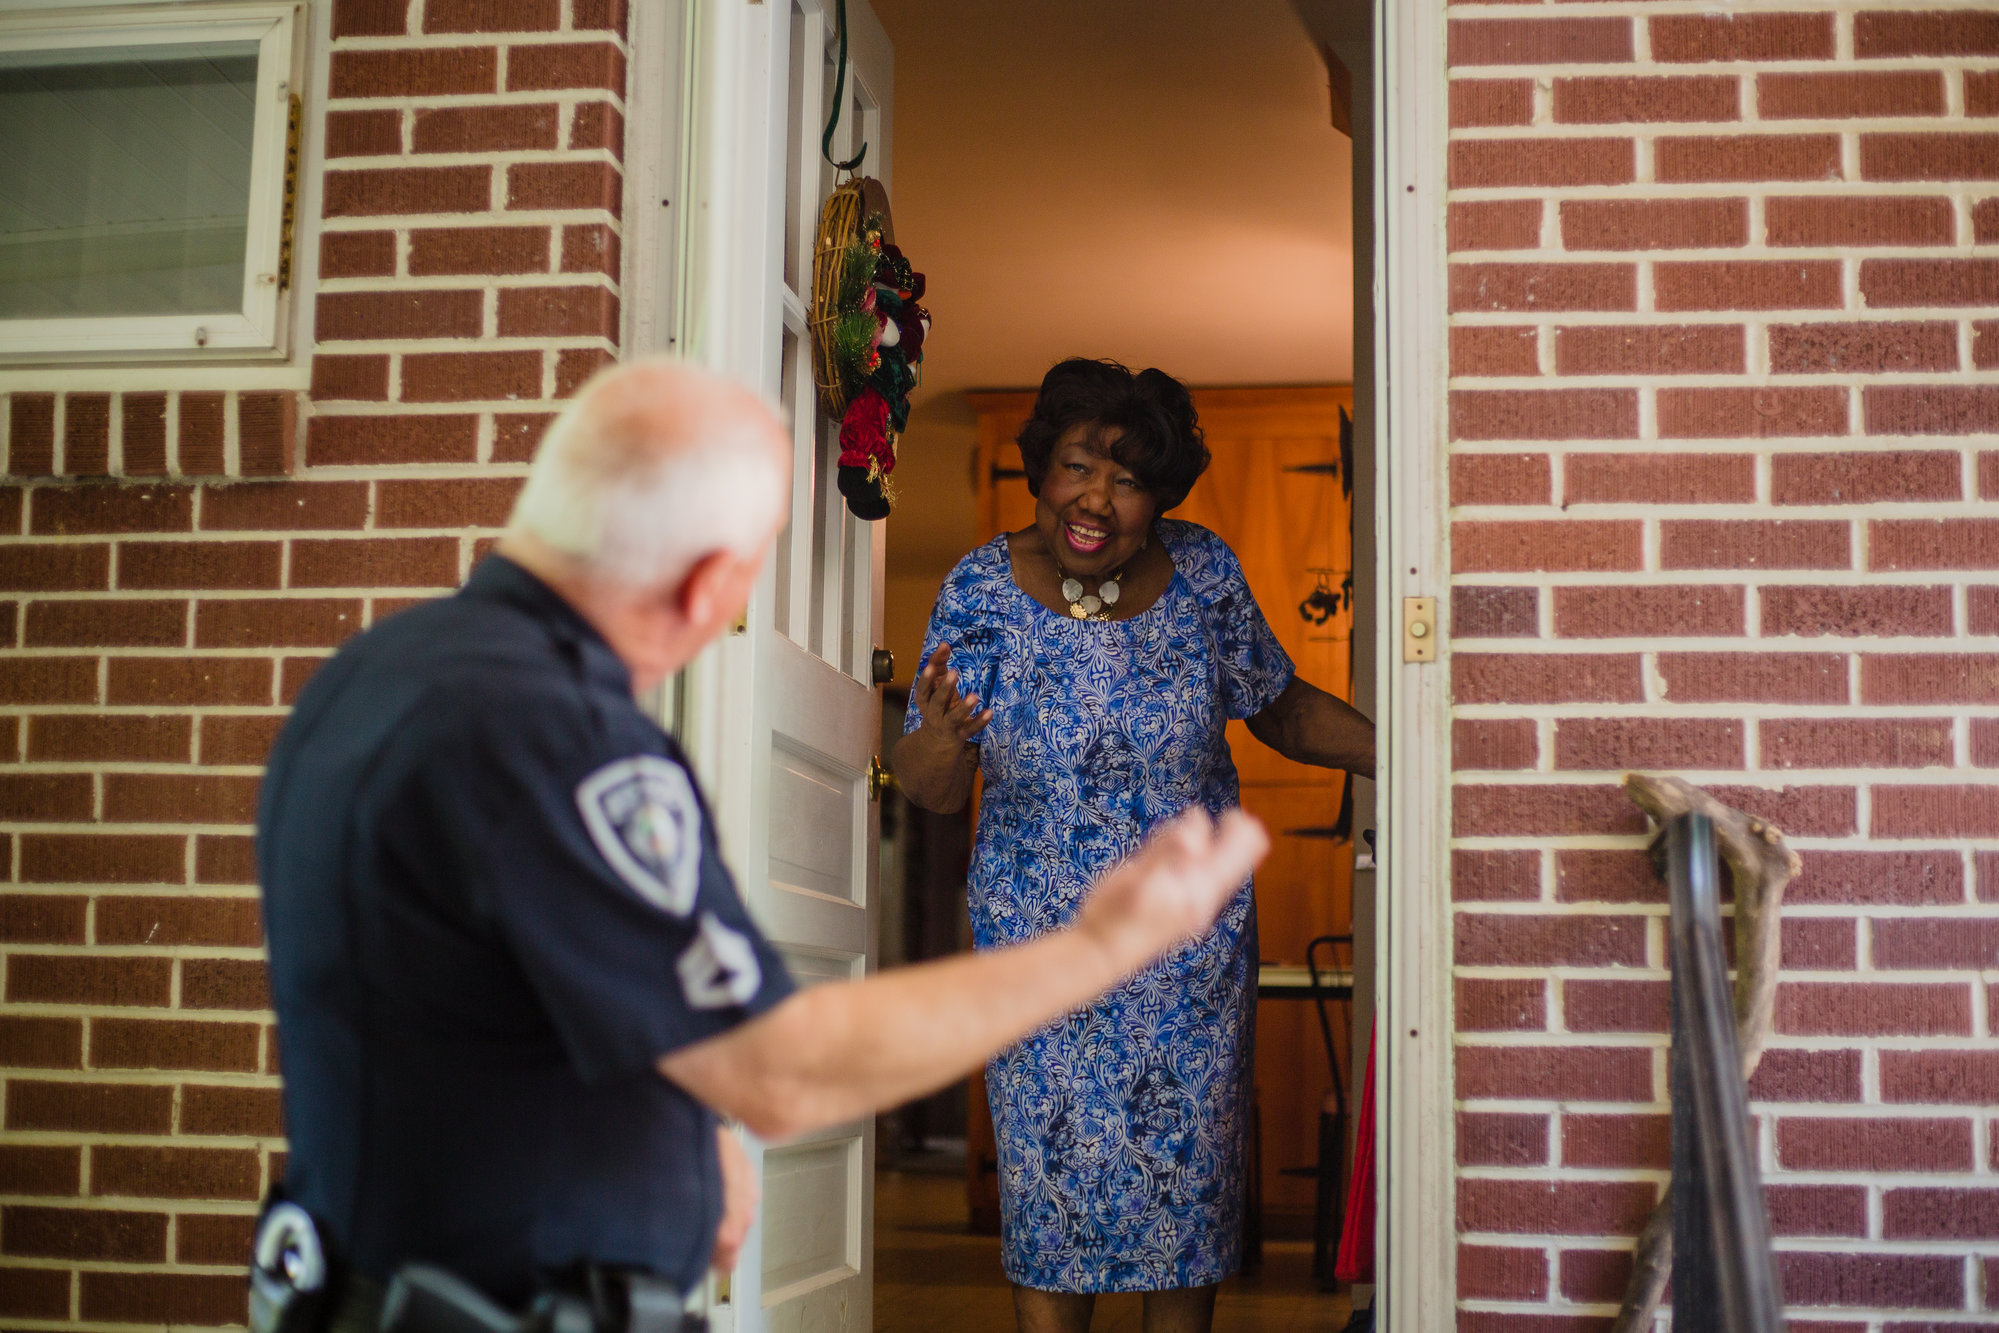 Senior Cpl. Warren Davis with Project Checkmate, a program created through Sumter Police Department, meets Mildred Byrden at her home Wednesday in Sumter. Davis checks up on 43 seniors living alone across Sumter each week, often also helping with tasks such as changing lightbulbs and driving them to doctor appointments.